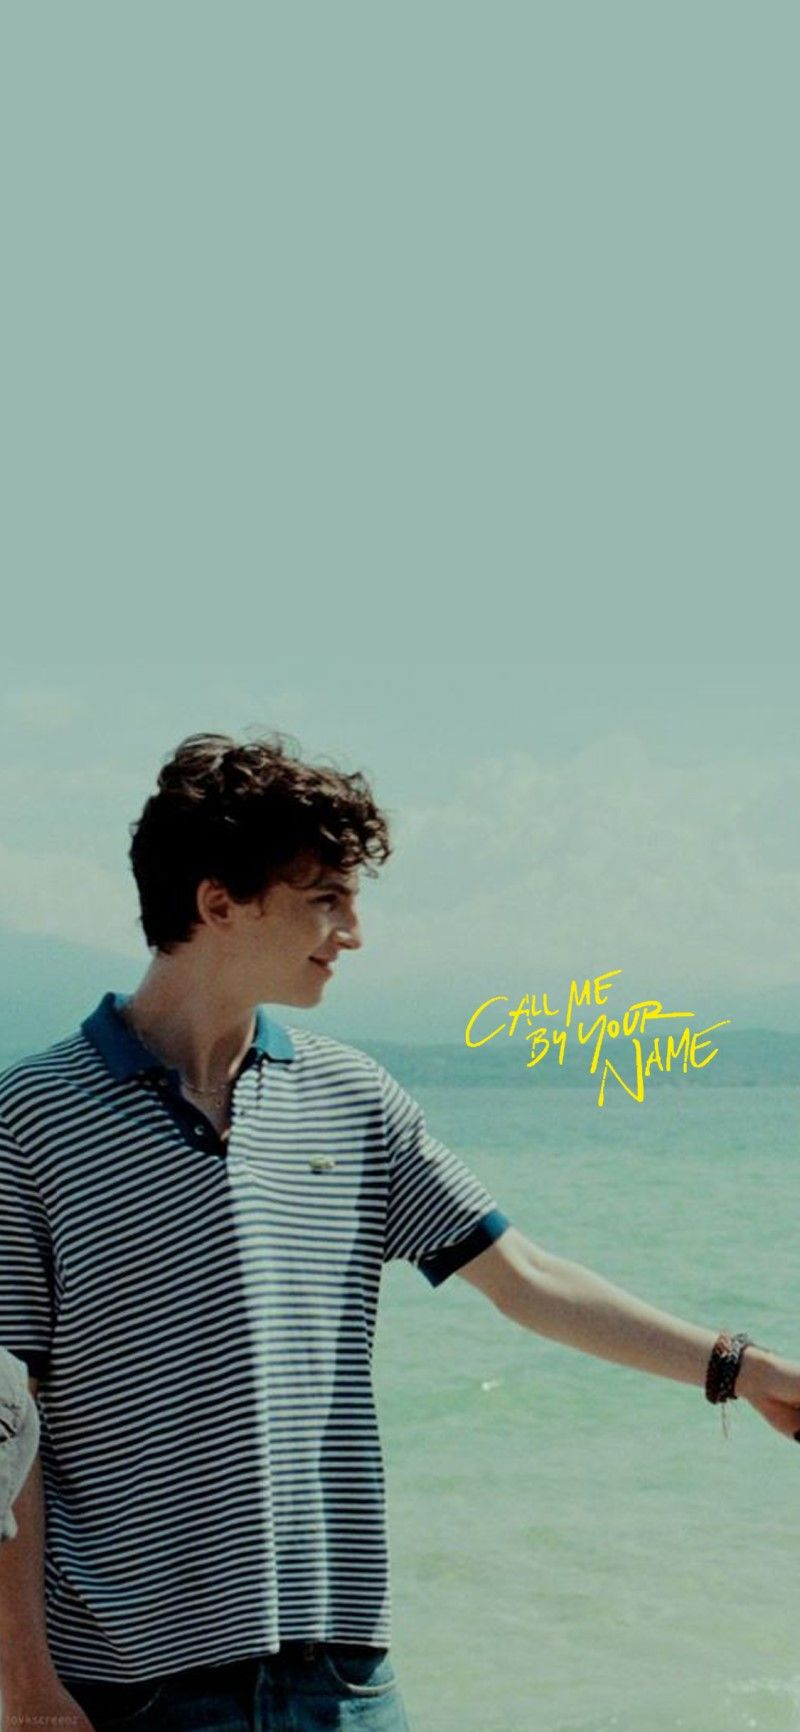 영화 Call Me By Your Name 아이폰배경화면 네이버 블로그 Call Me Your Name Wallpaper Name Wallpaper